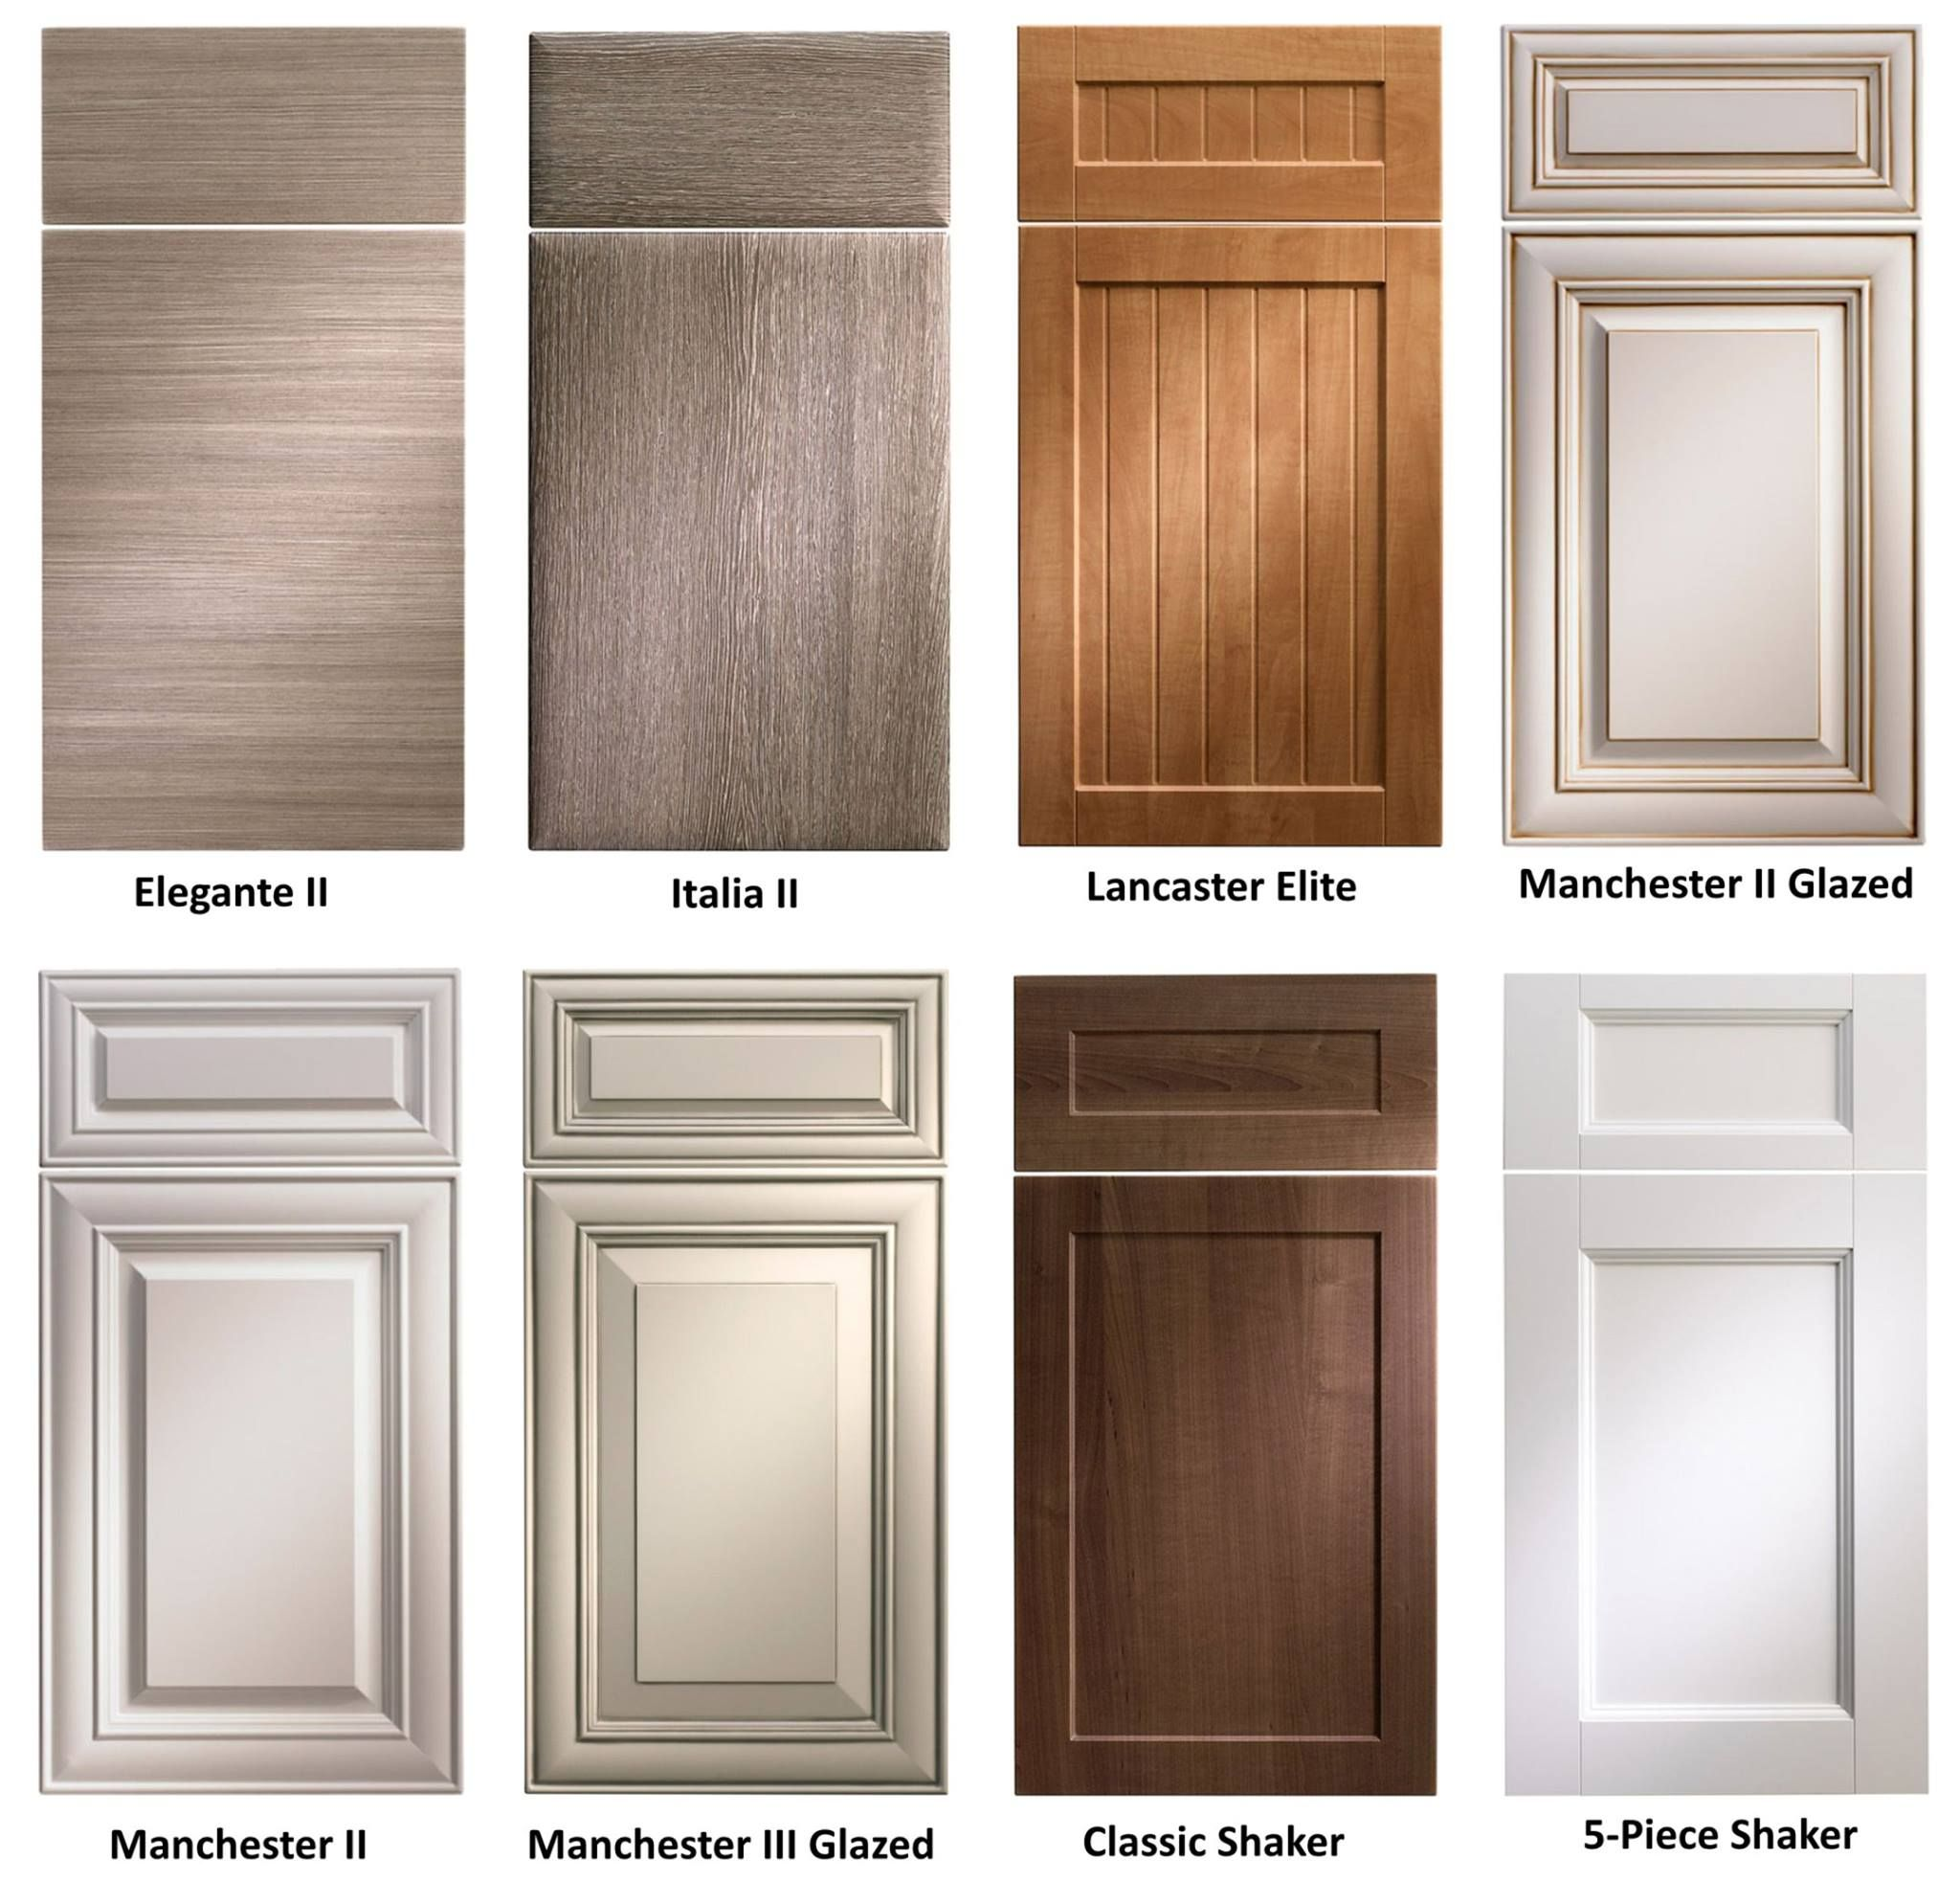 Popular Cabinet Door Styles For Kitchen Cabinet Refacing 2 Ev Icin Evler